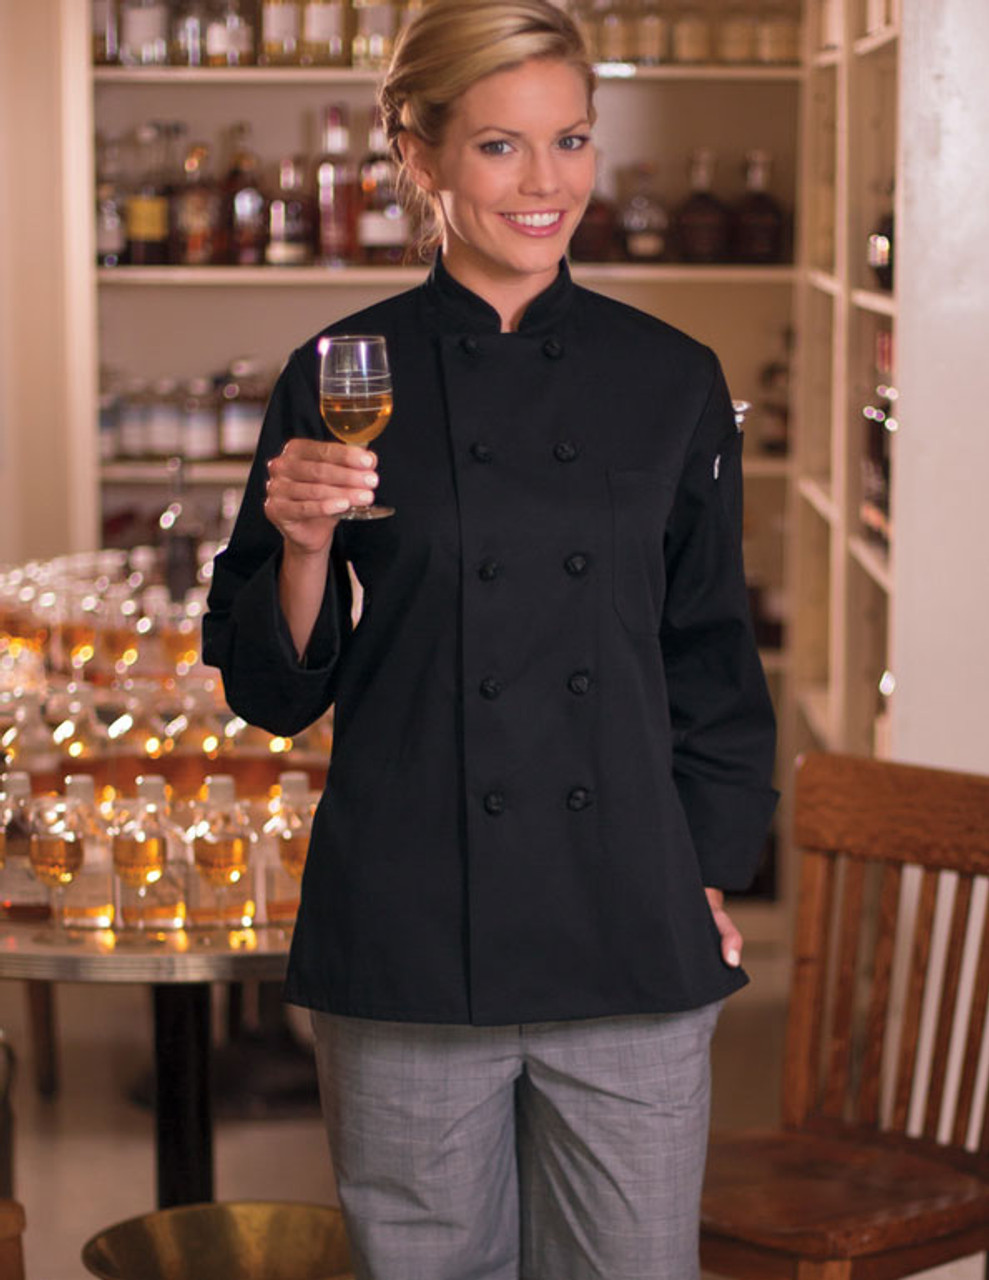 Classy women's fitted chef coat